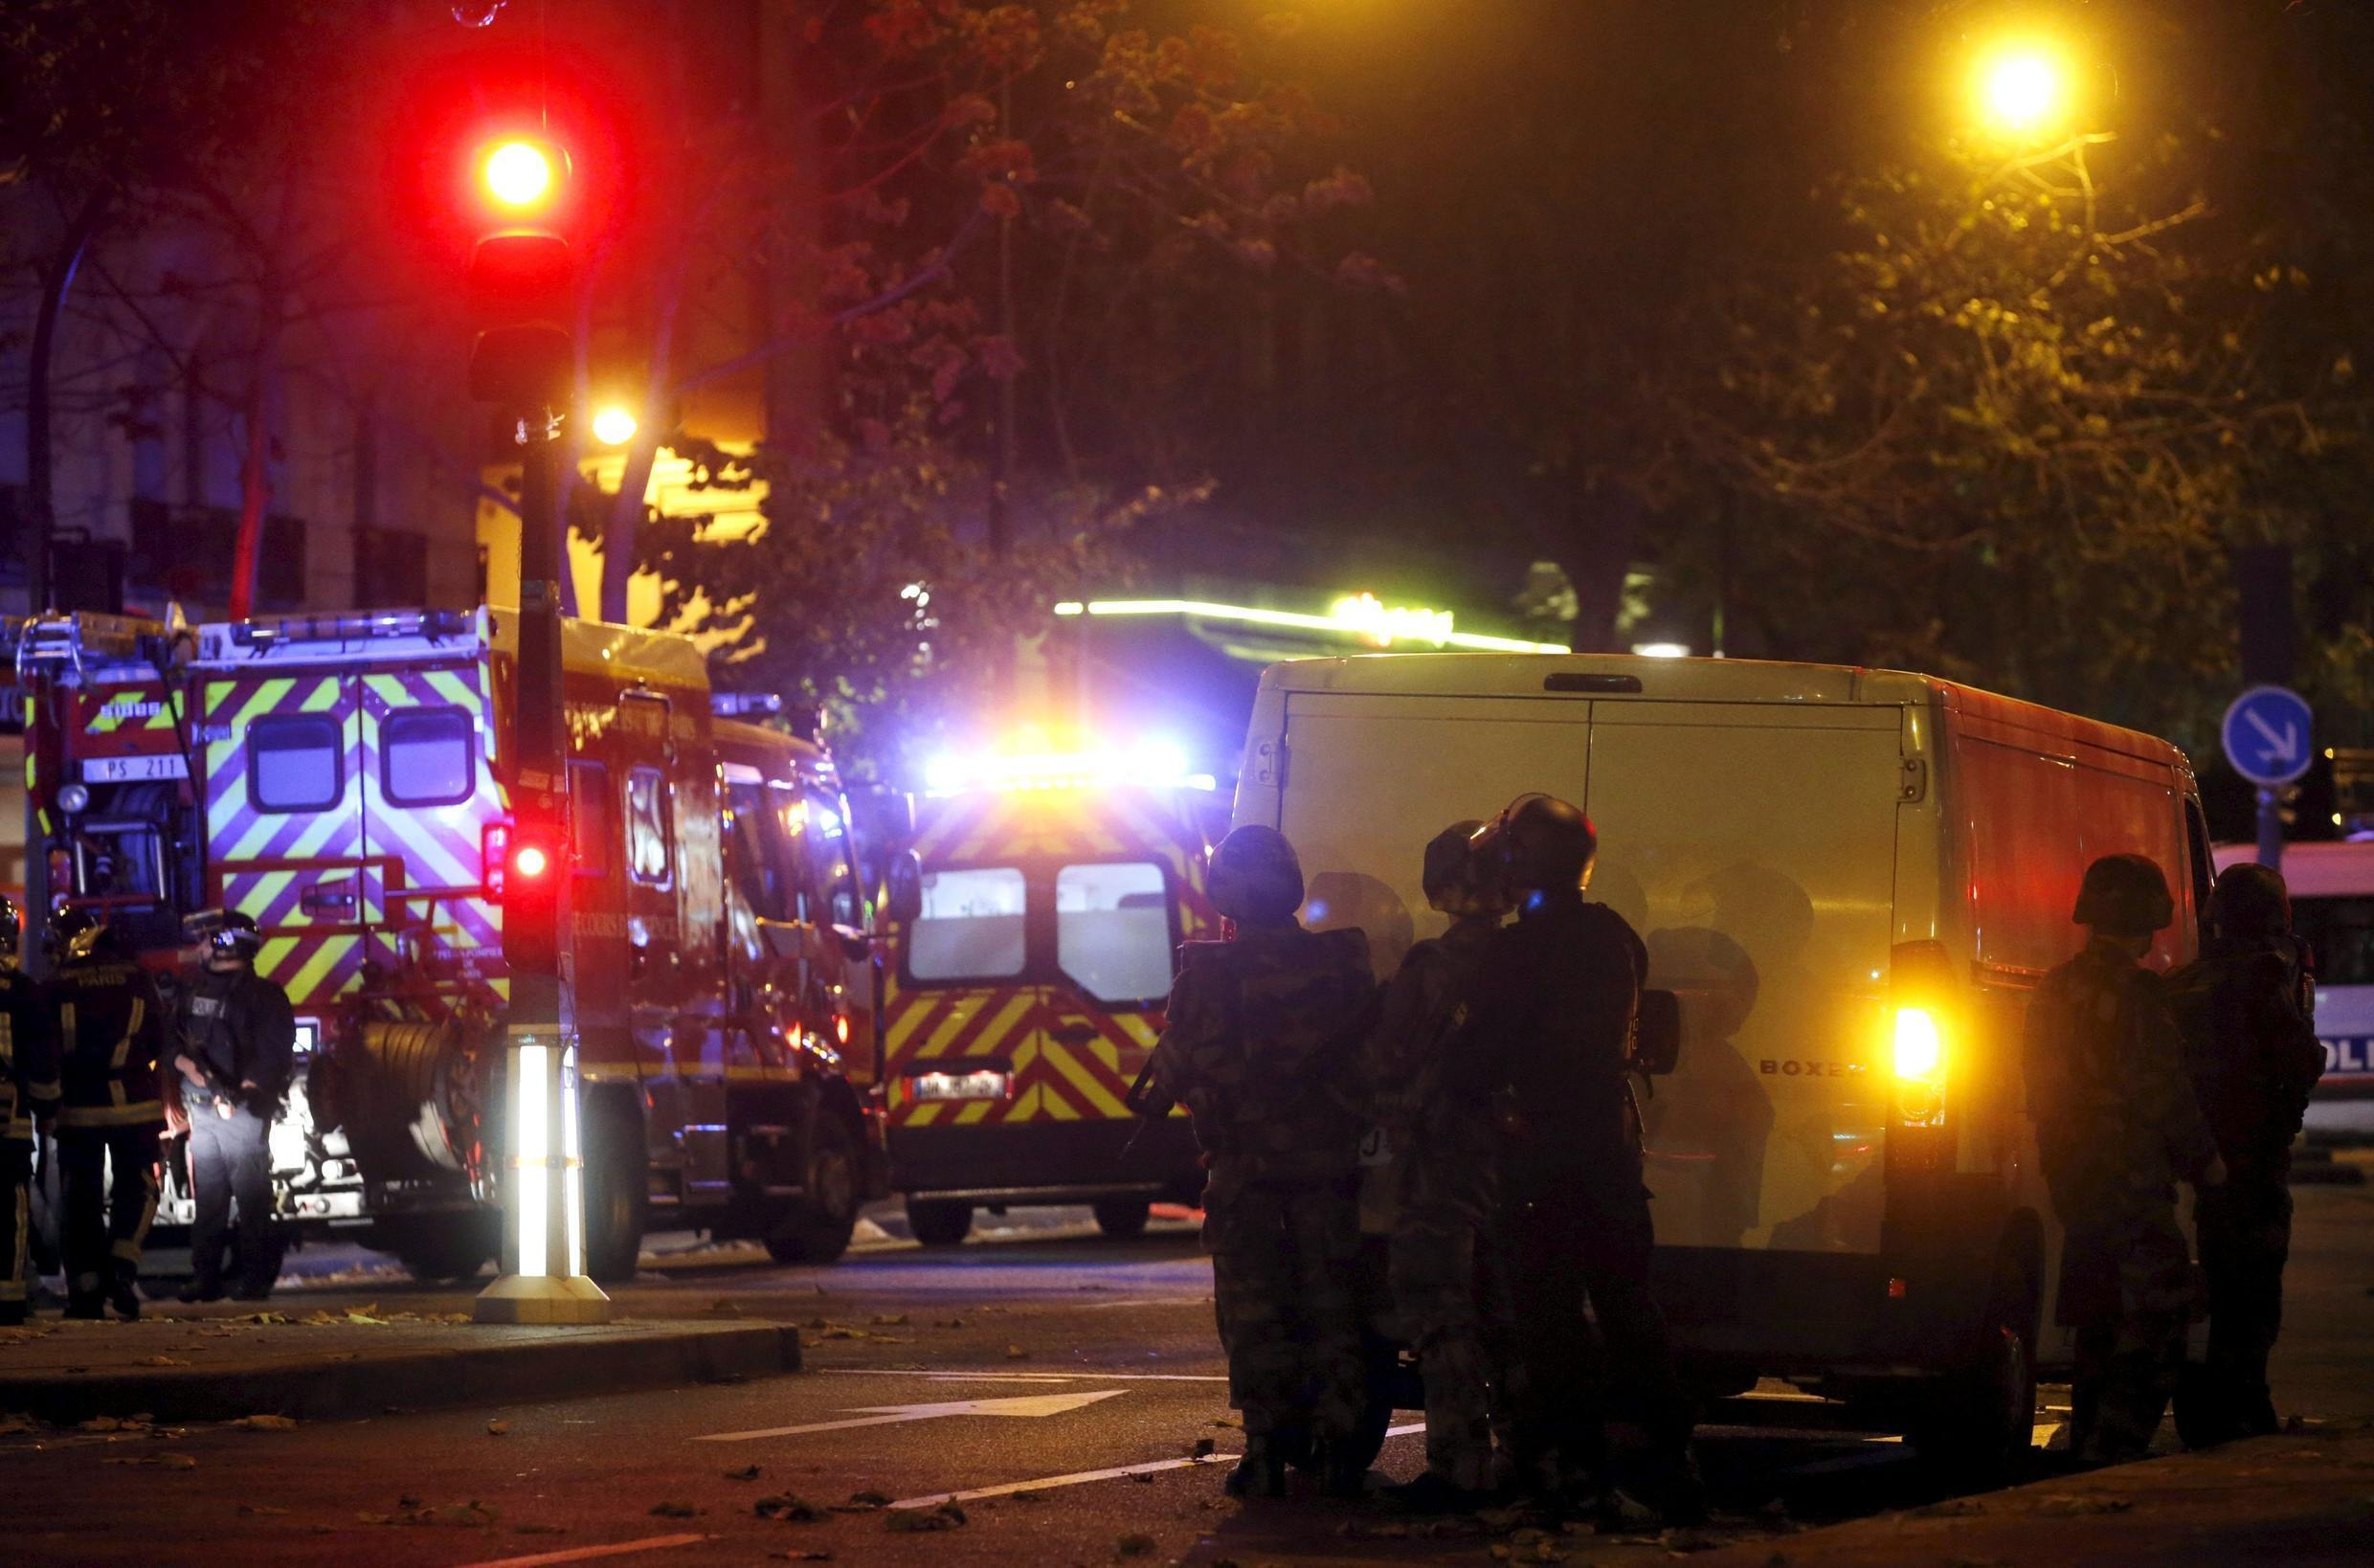 Click here to read more articles on Paris attacks